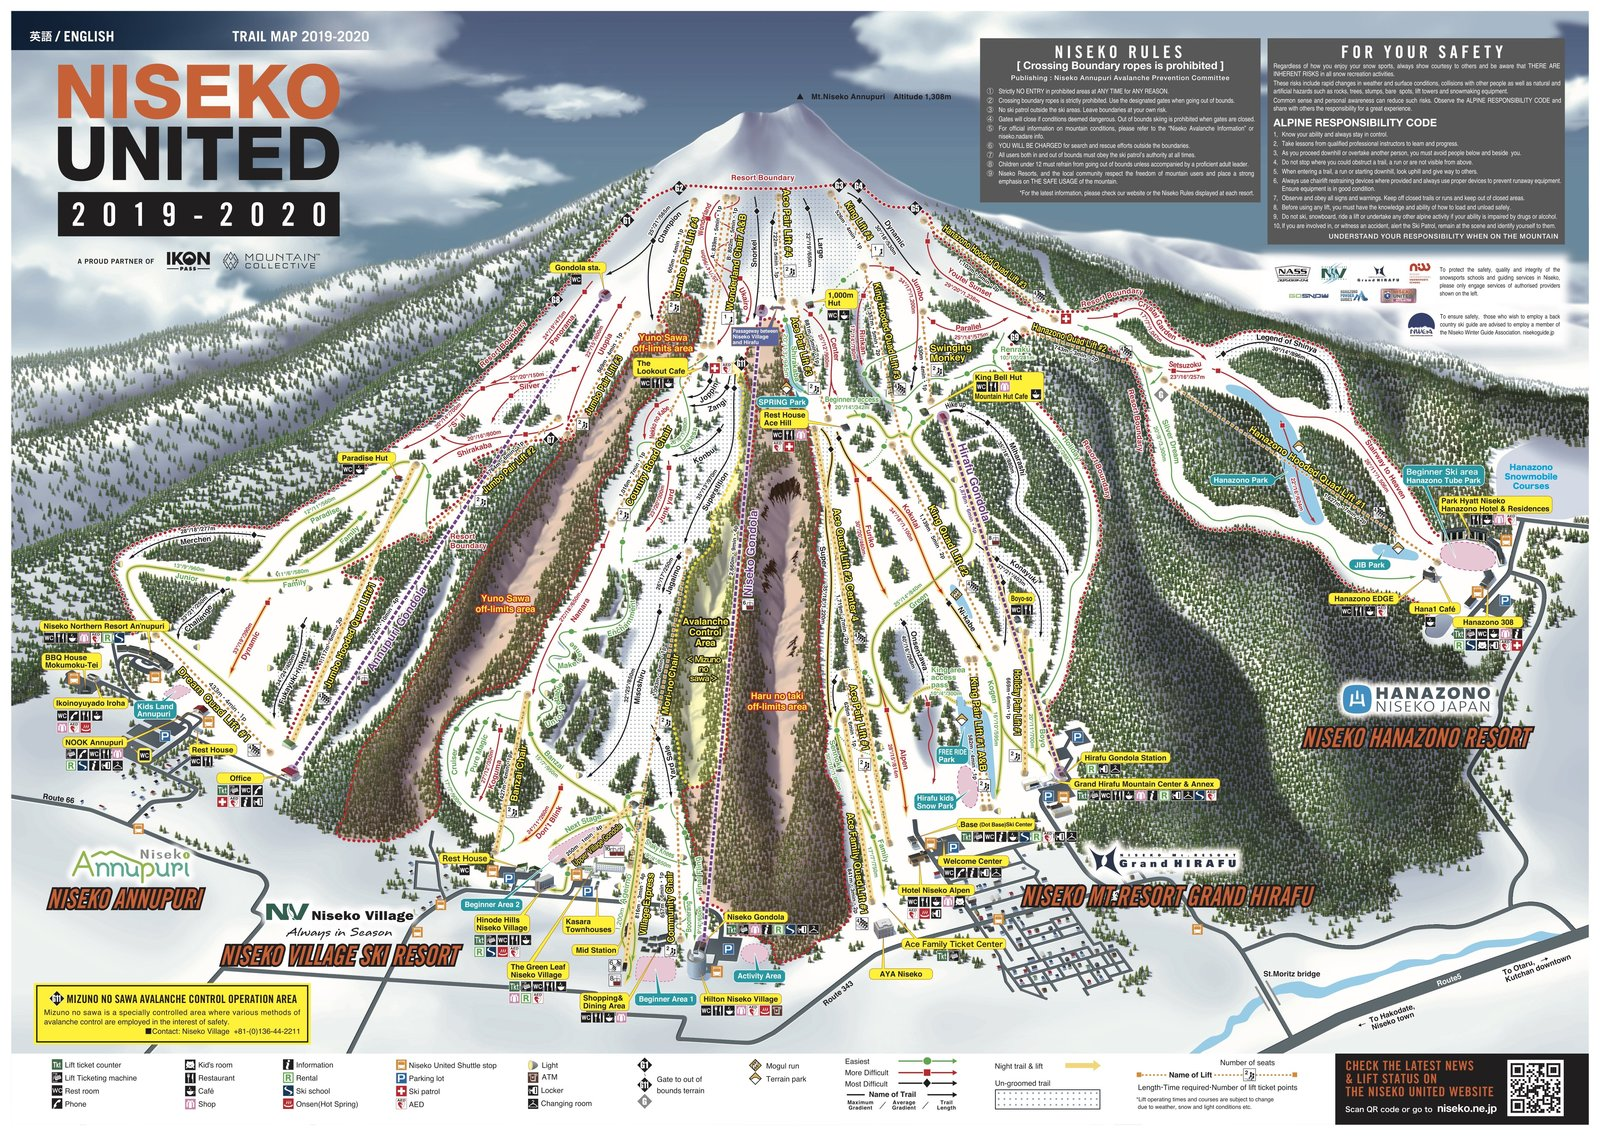 Niseko Trail Map 2019-20